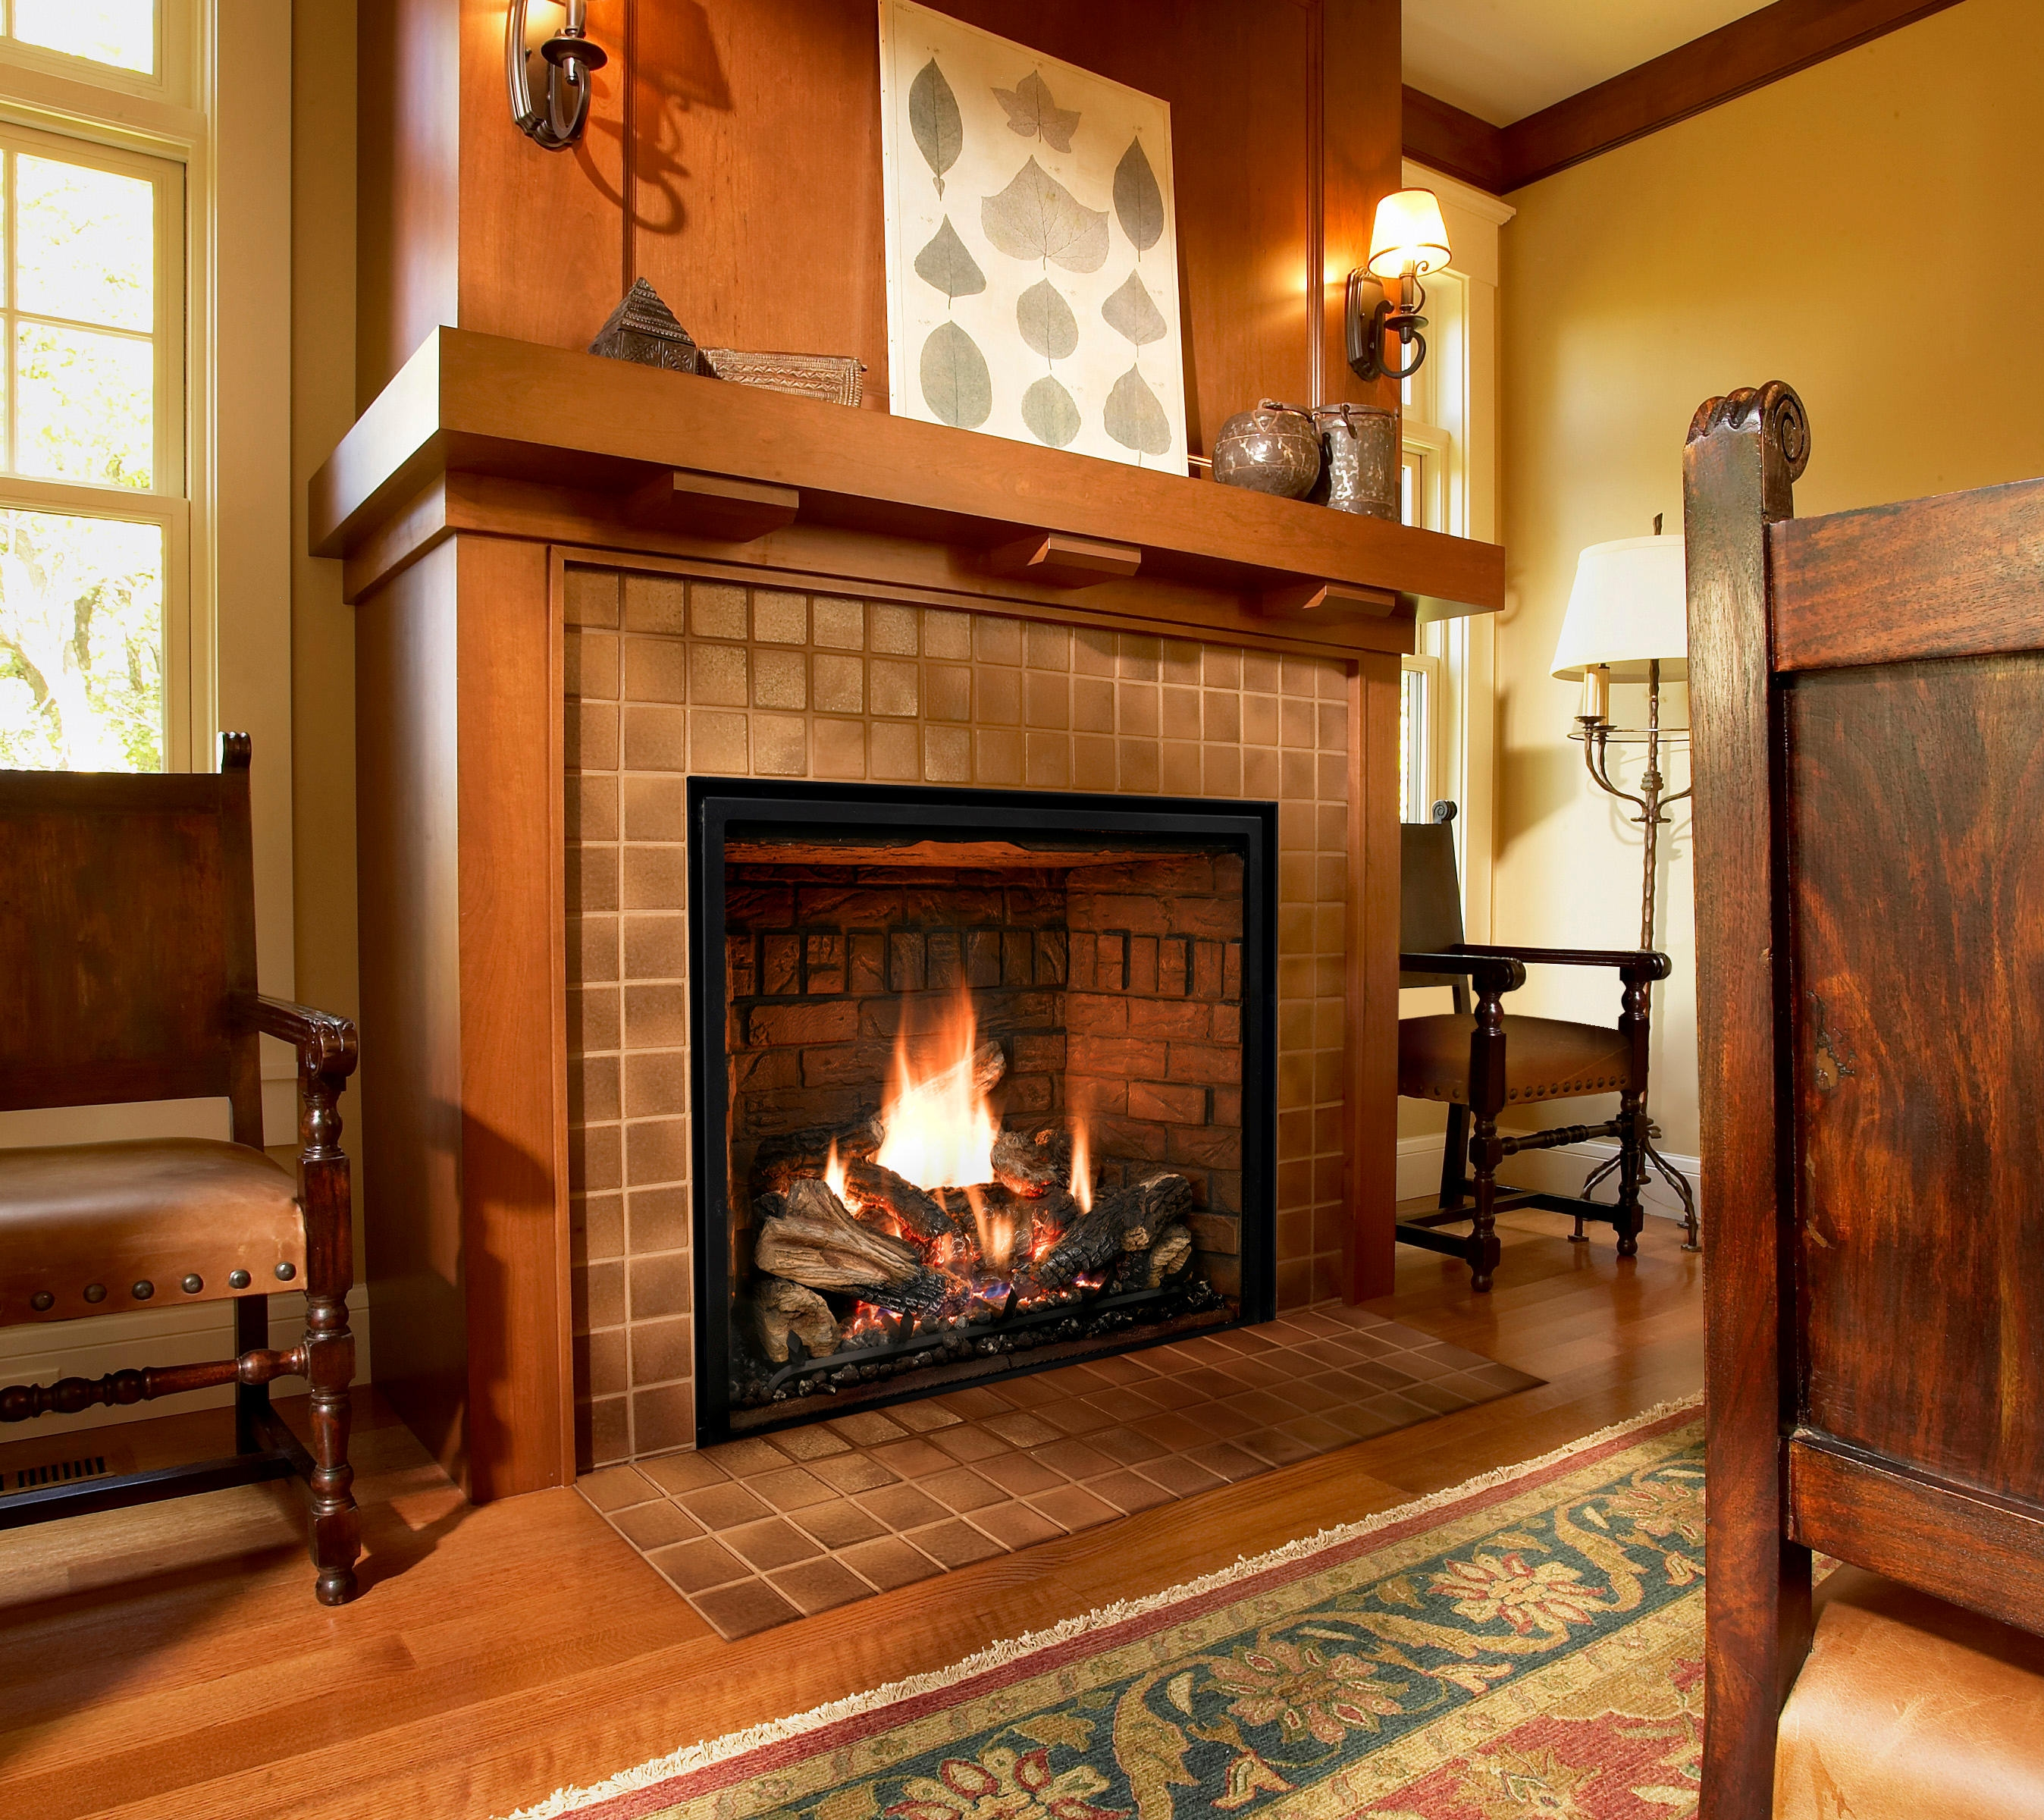 Fireplace High Quality Background on Wallpapers Vista